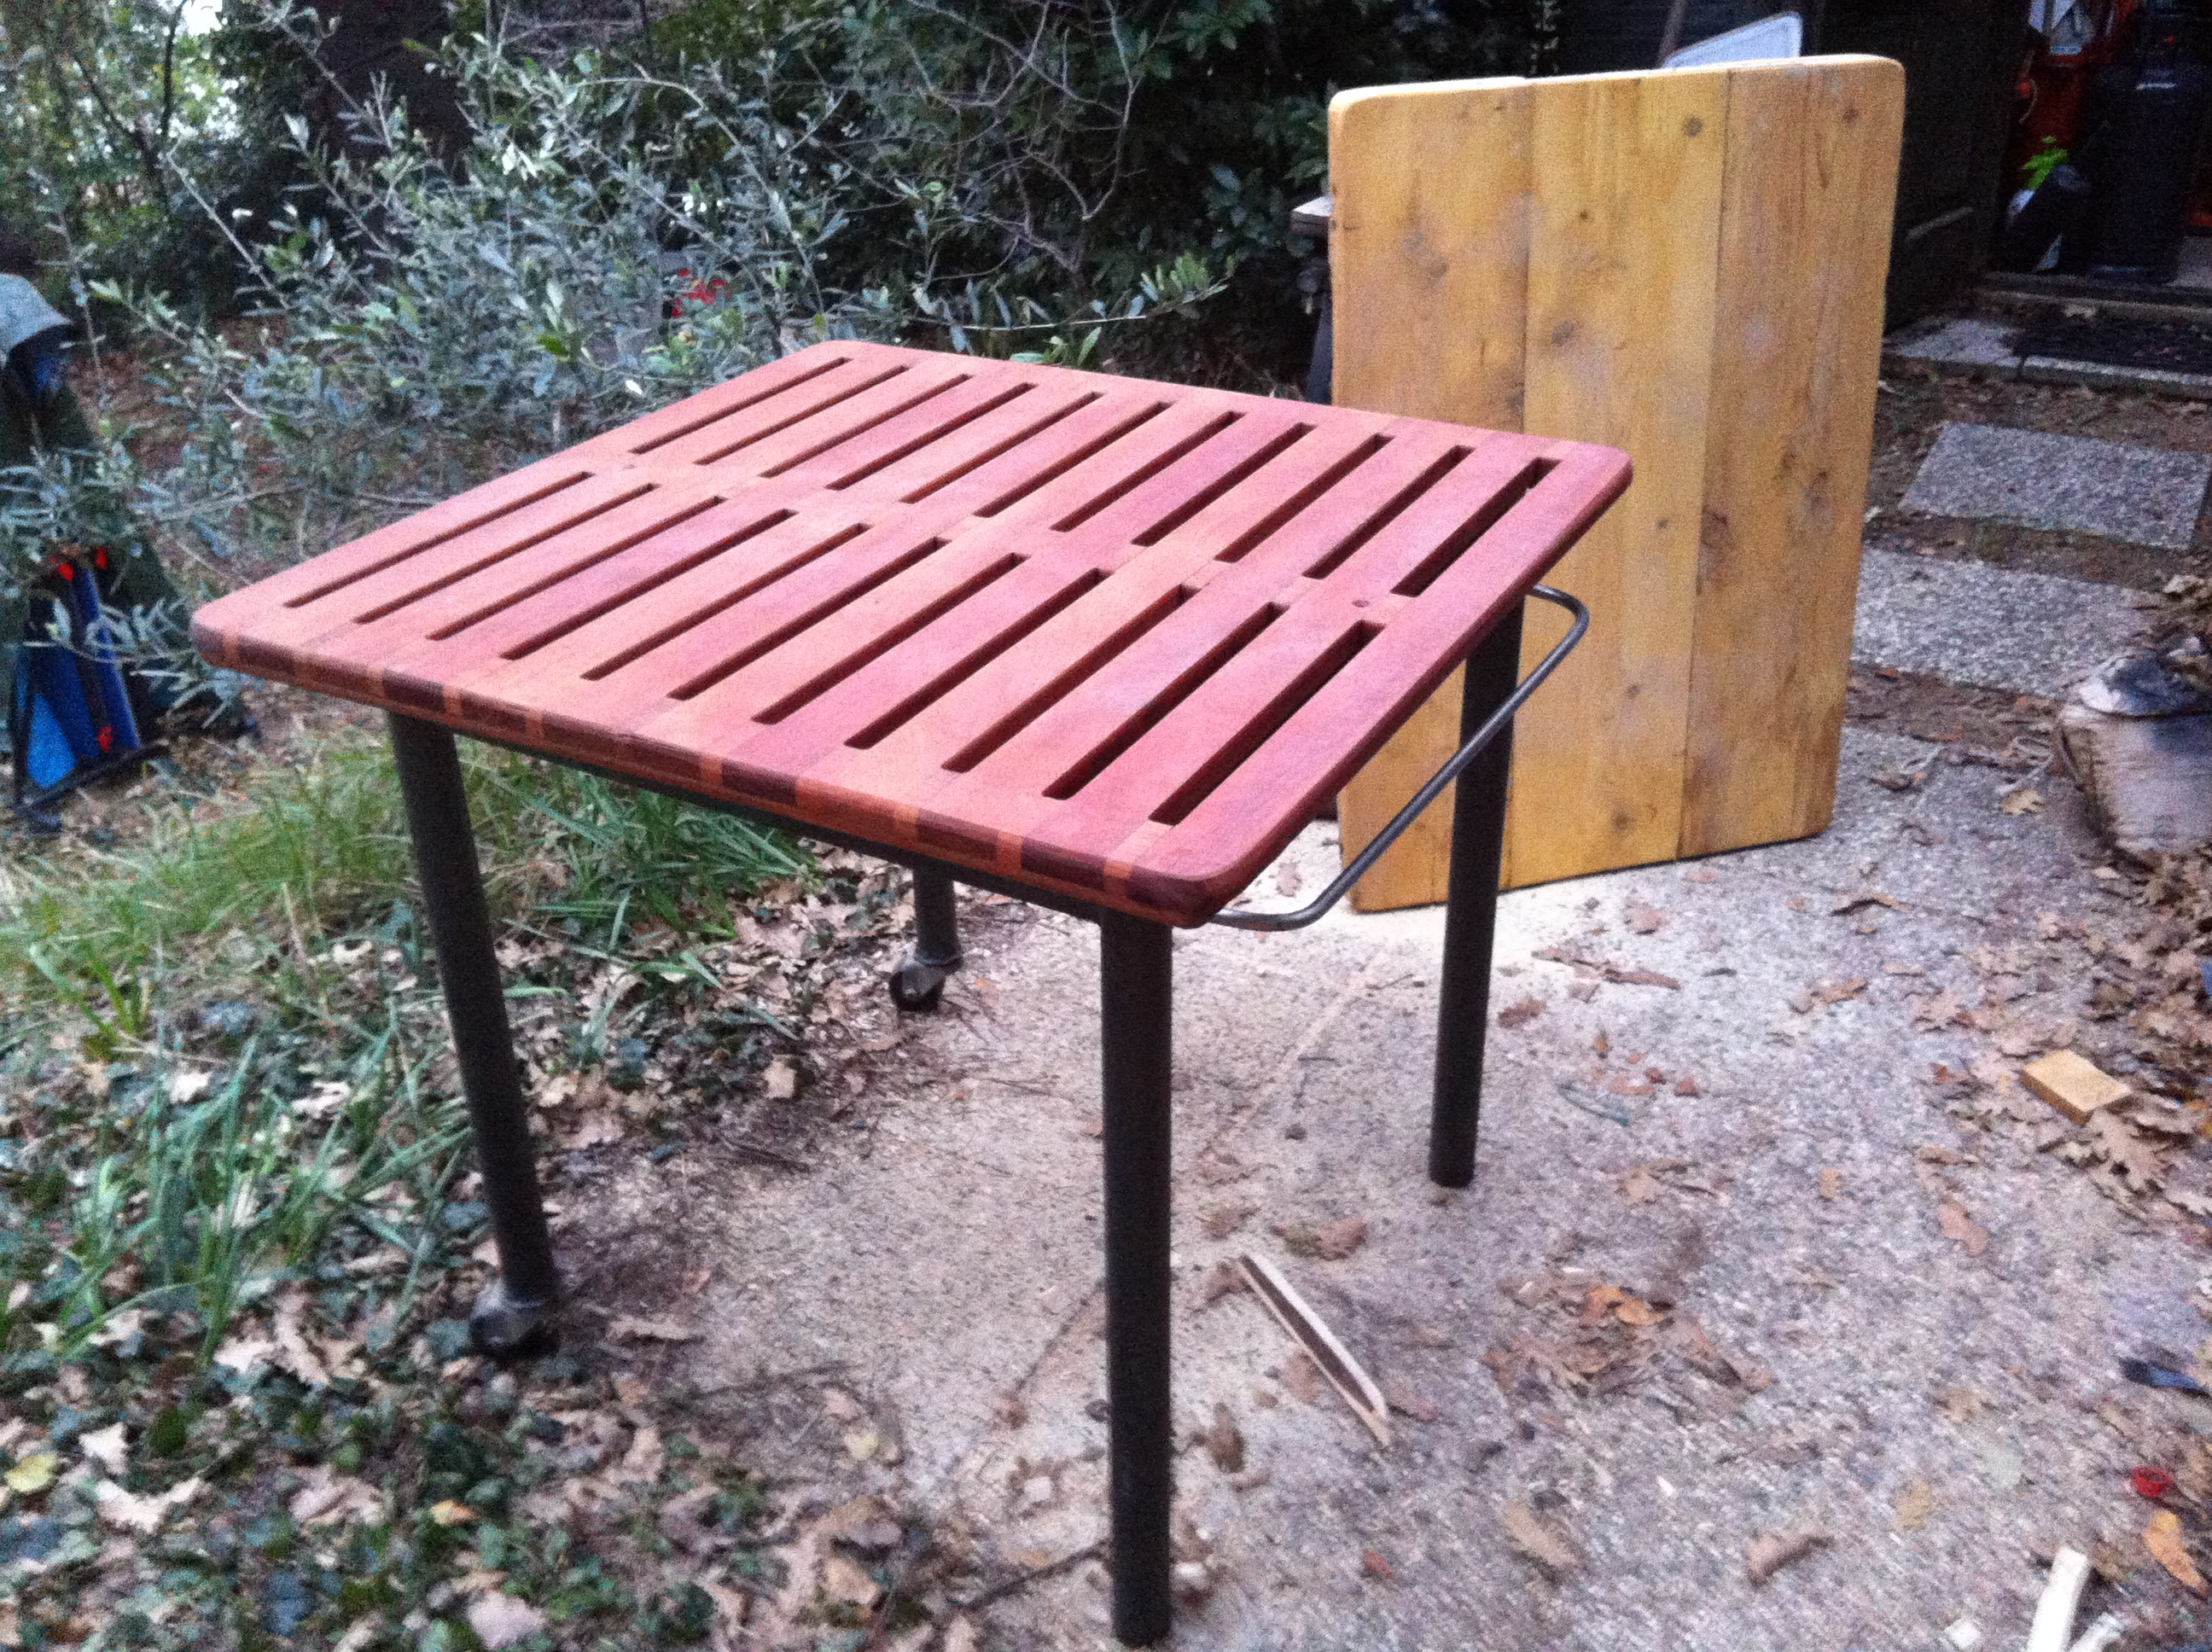 Picture of Work Bench / Pic Nic Table